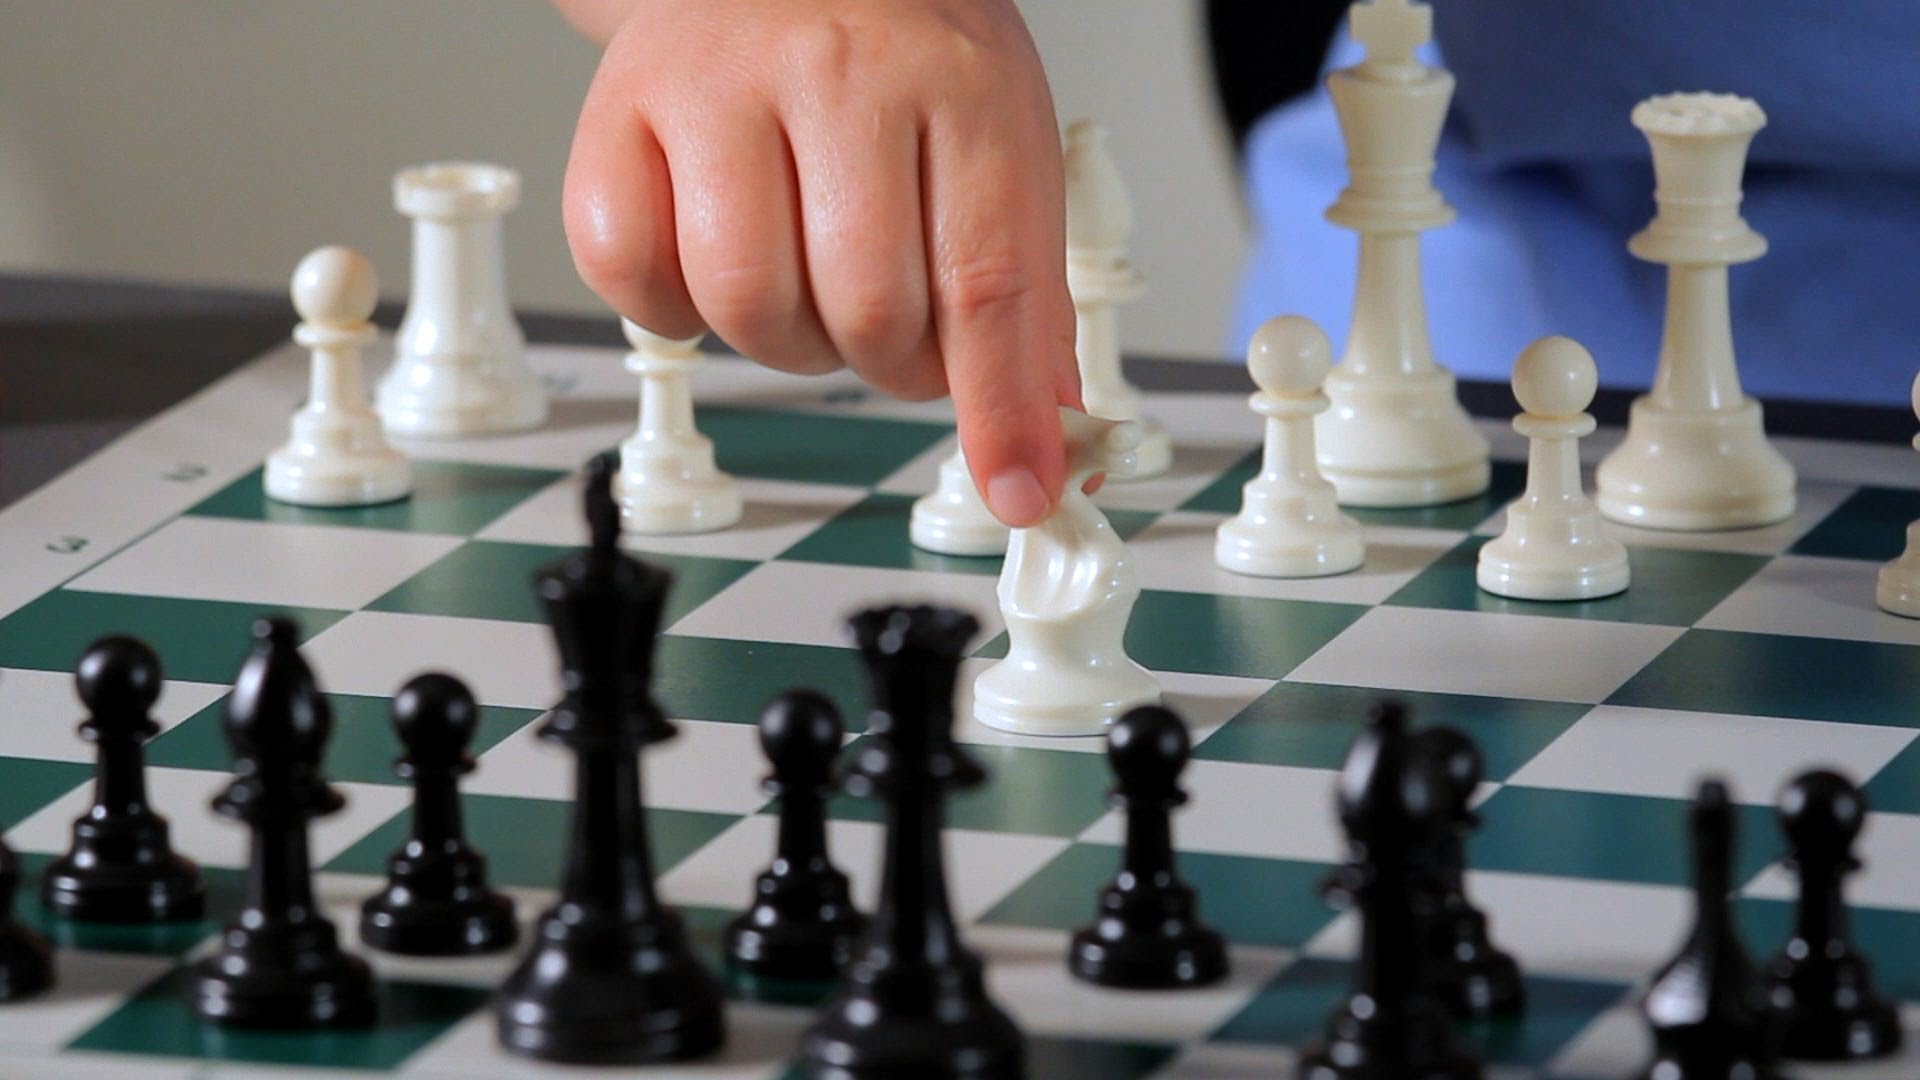 A Chess Game in Global Politics